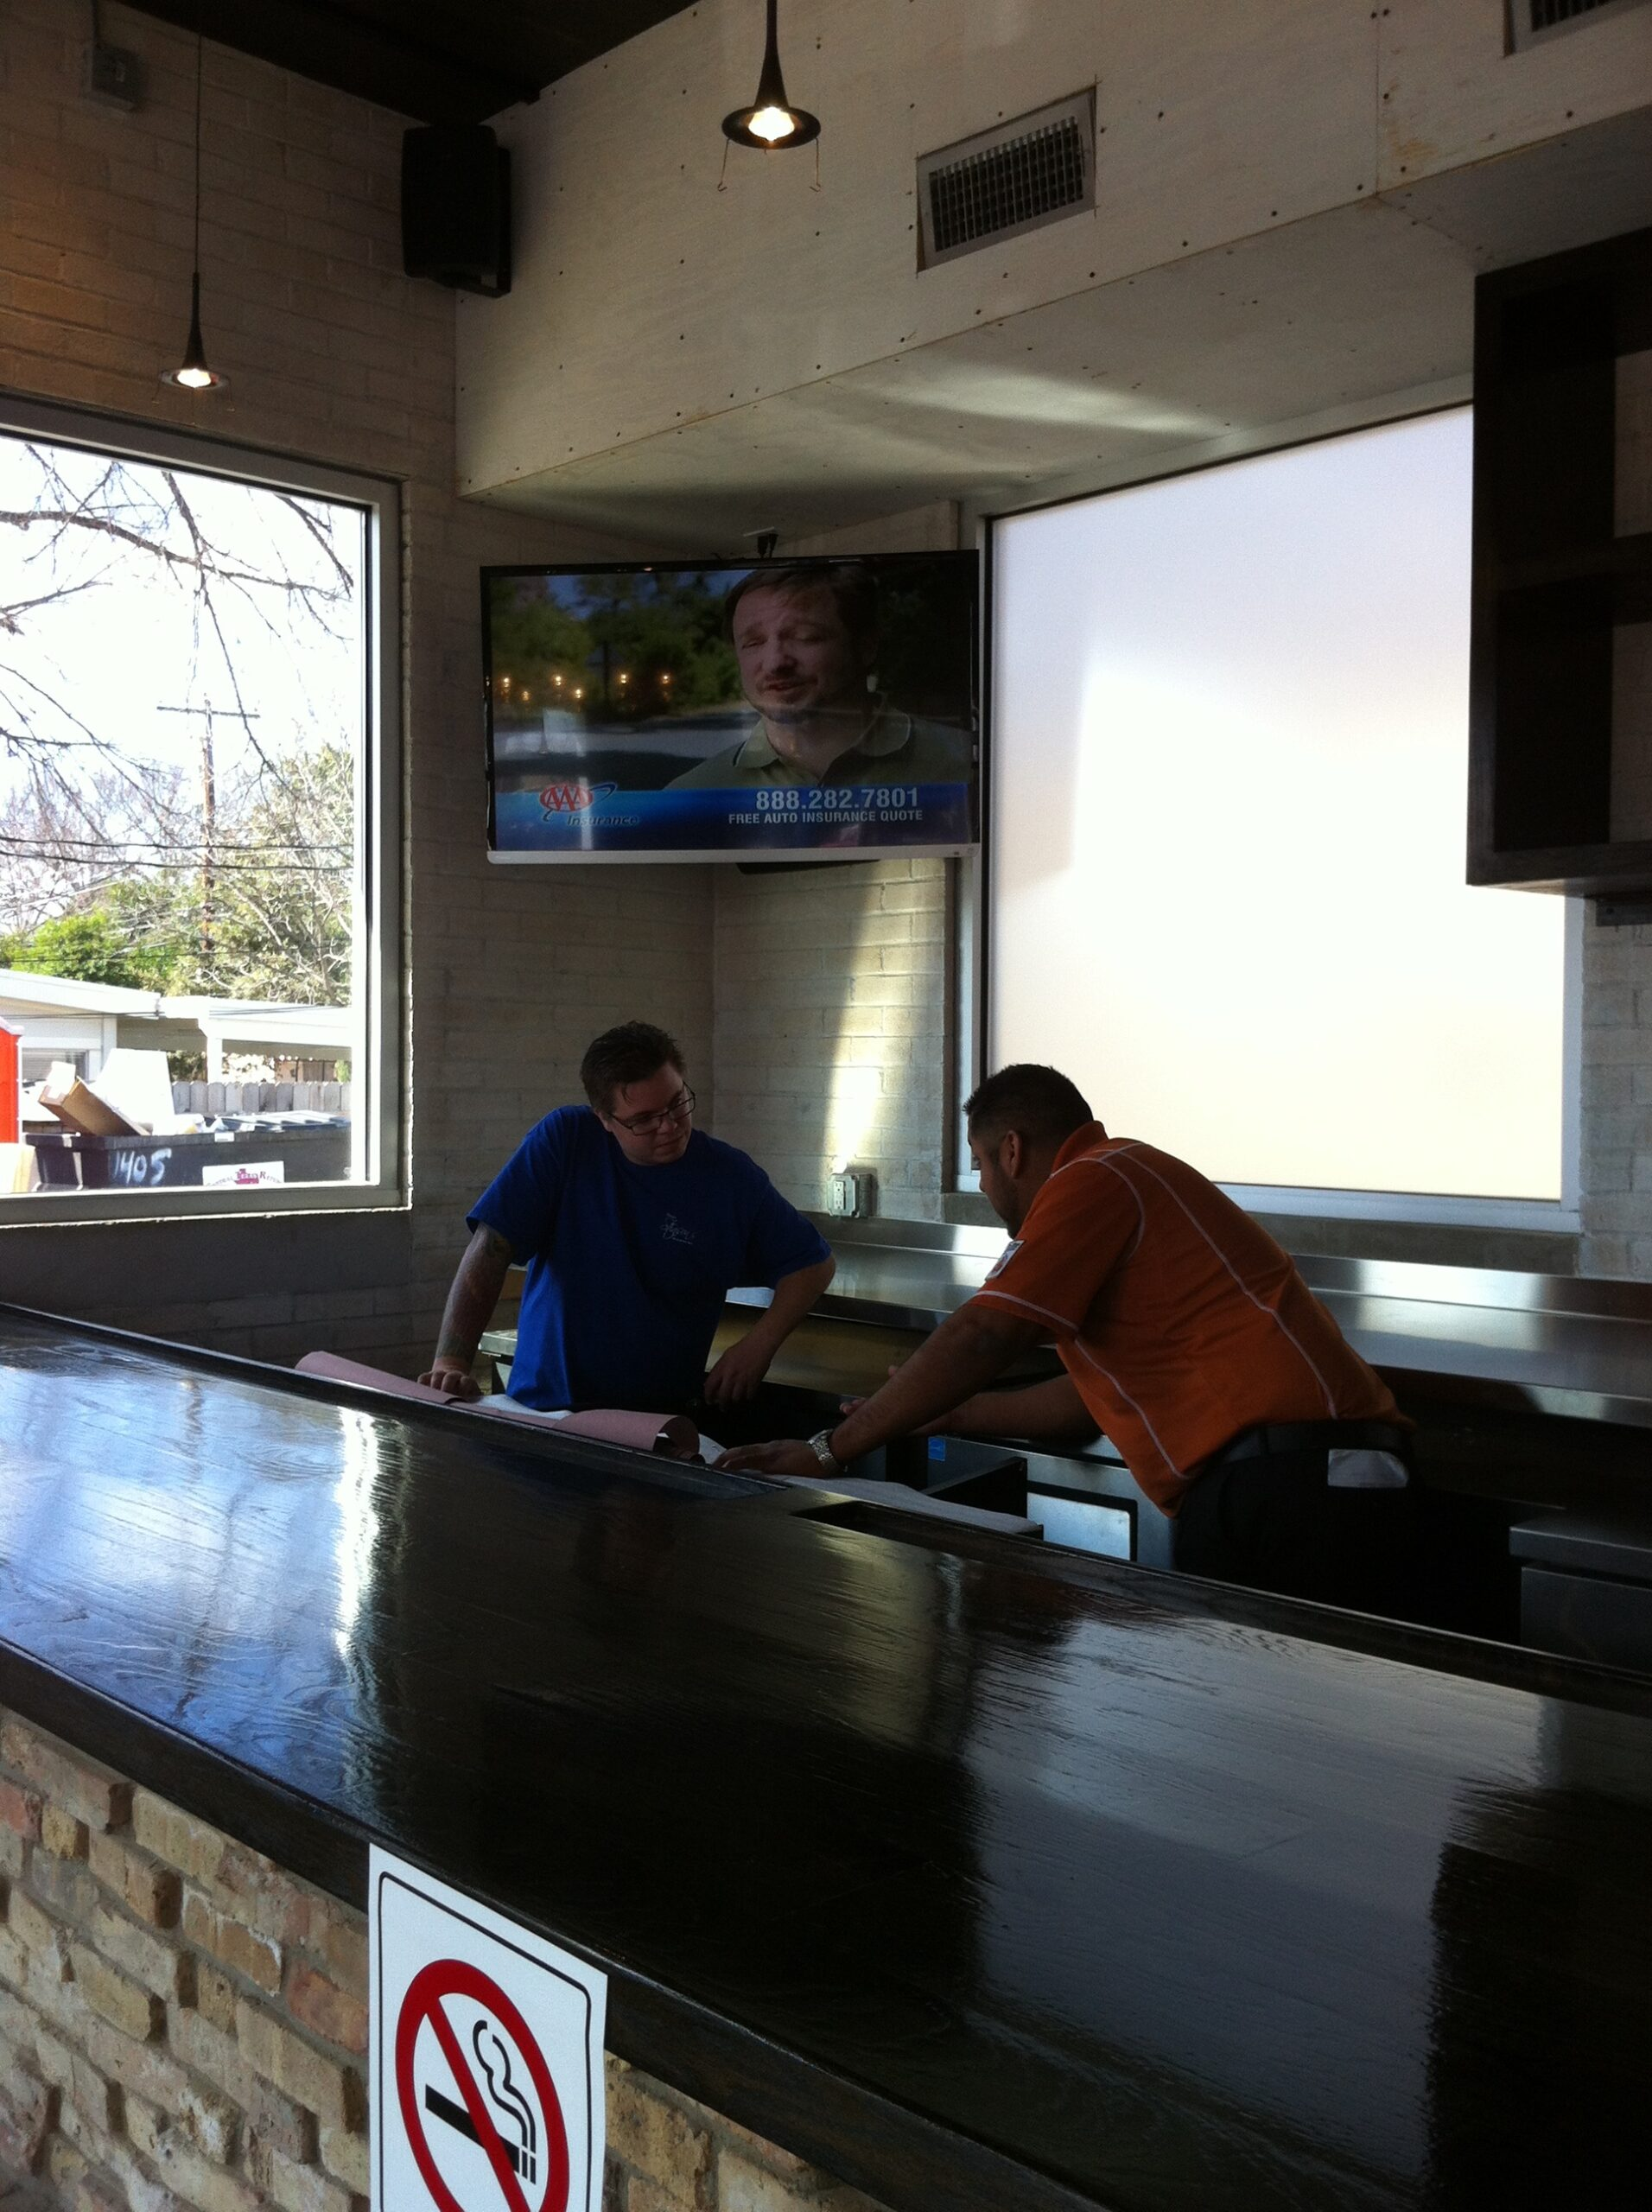 Retail Fast food with smart control system, surround sound speakers and smart mounted TVs